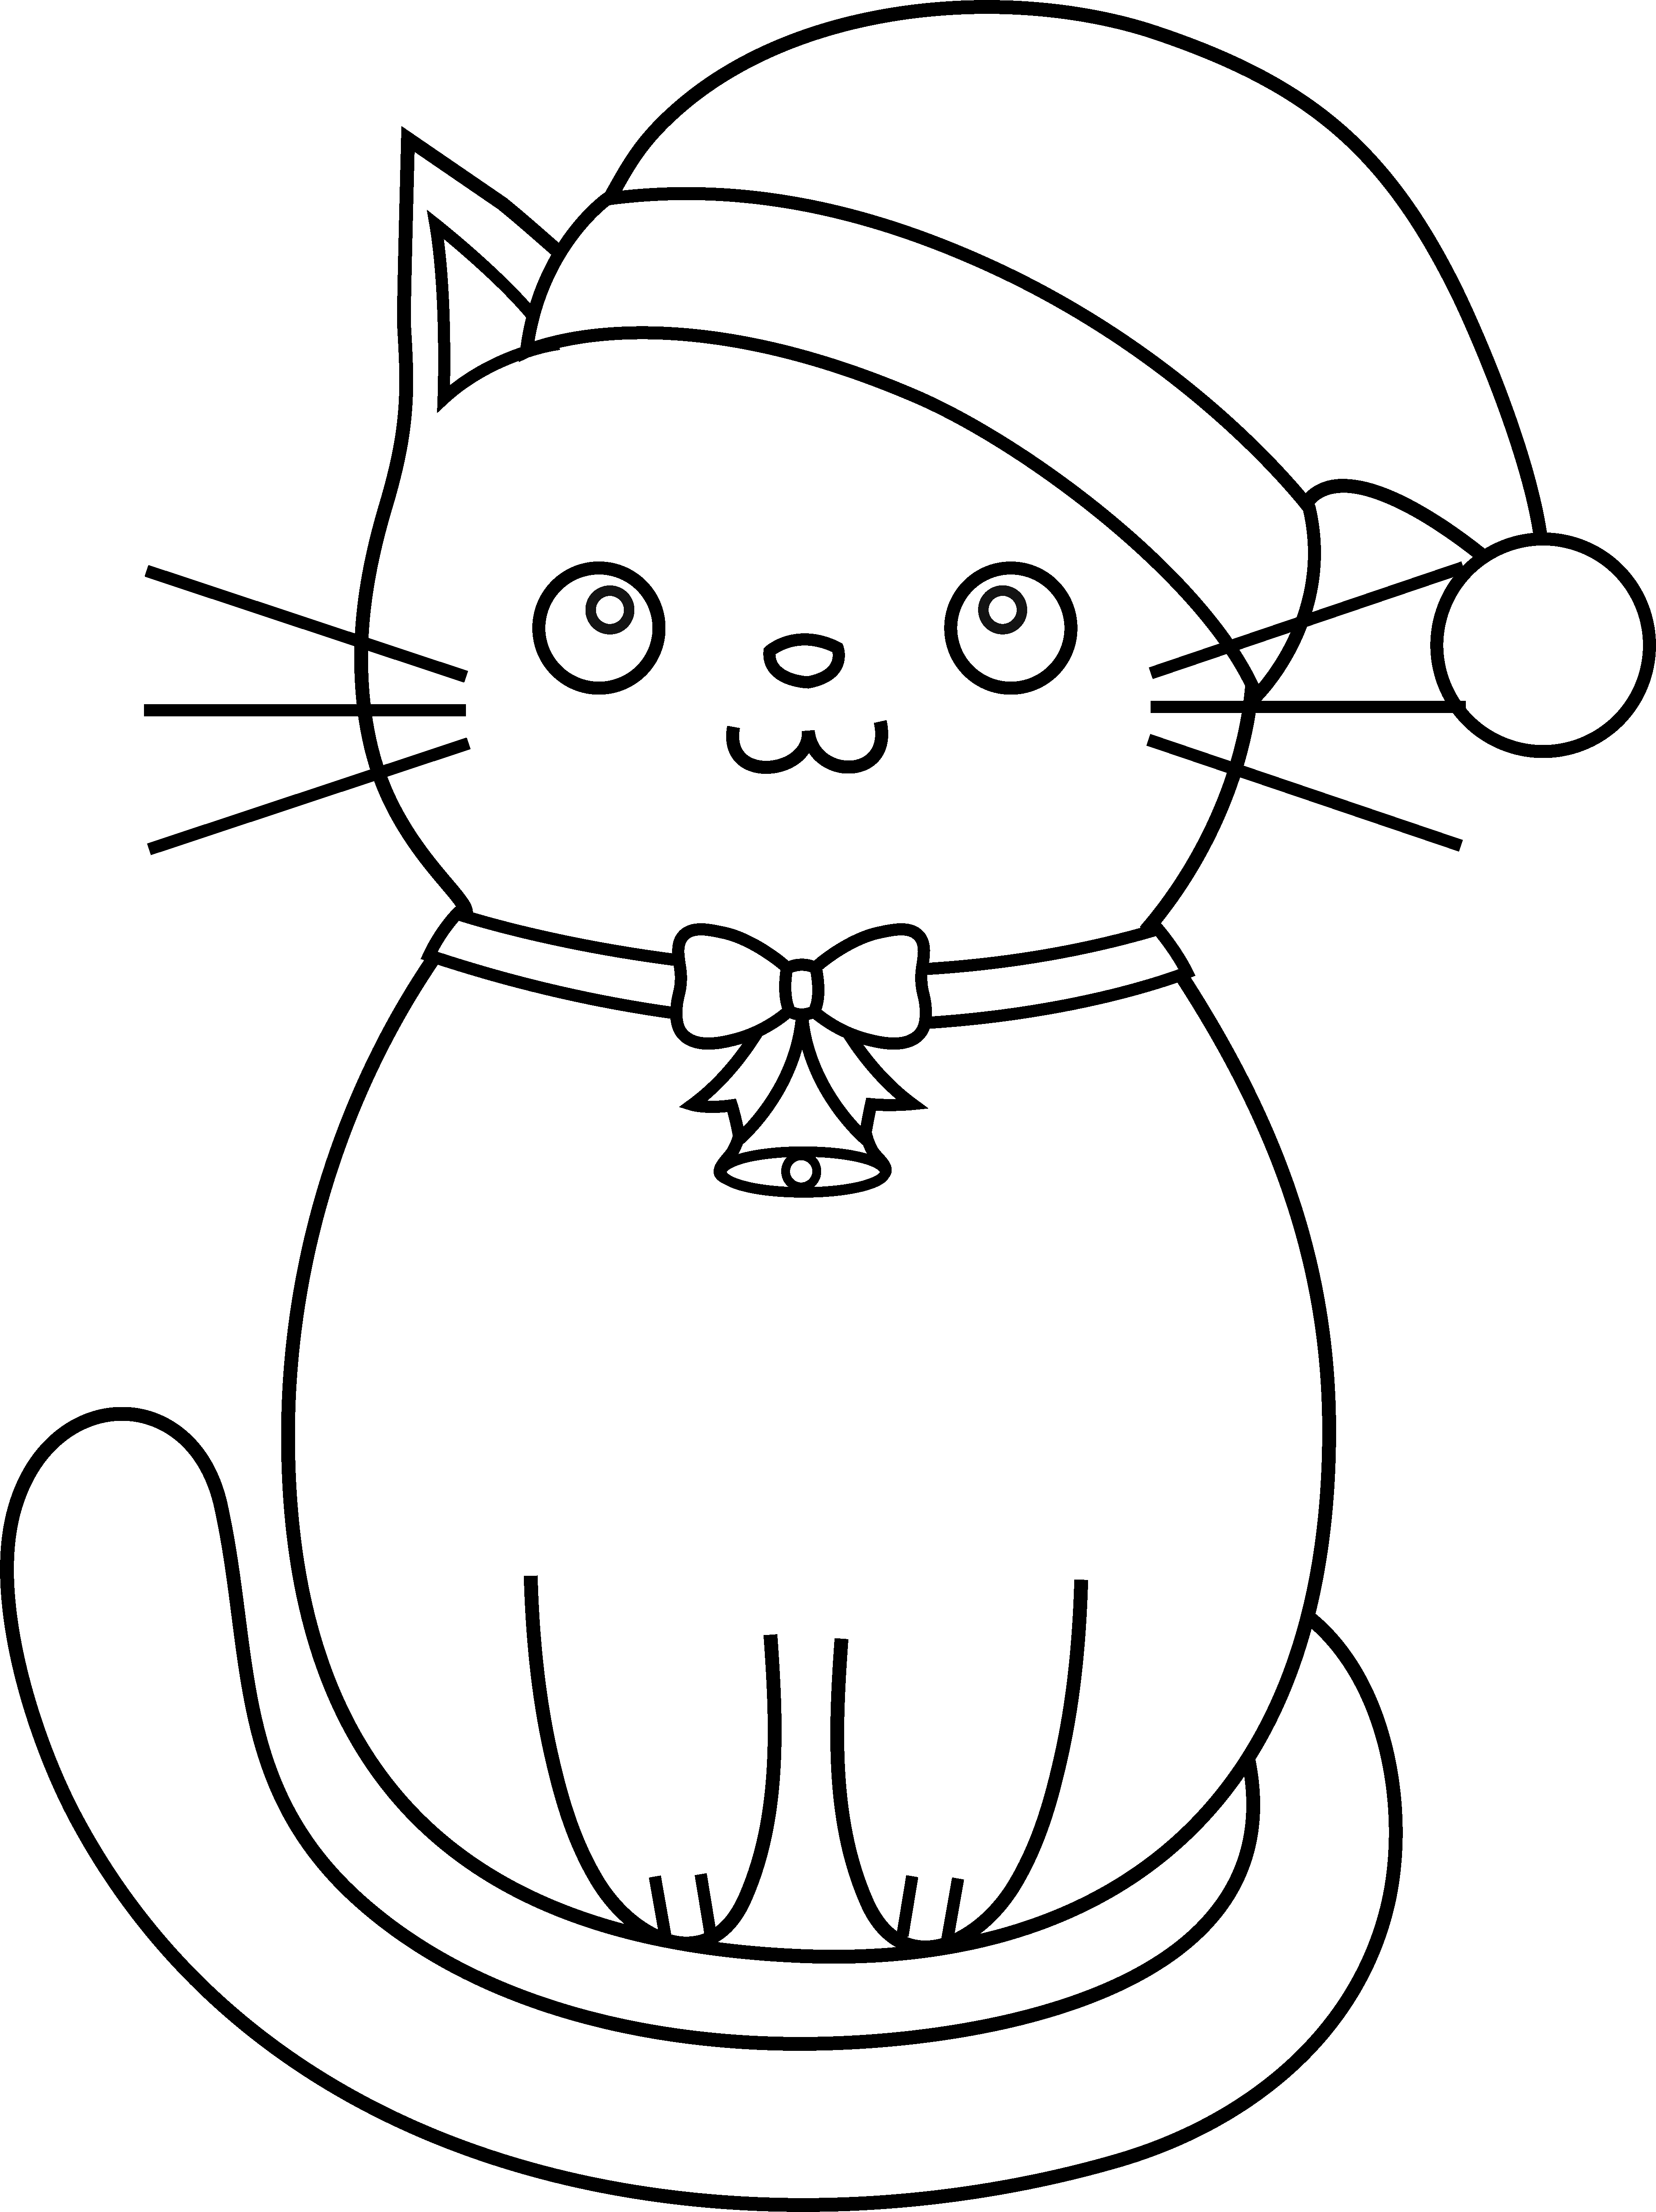 kitten color pages kitten coloring pages to download and print for free kitten pages color